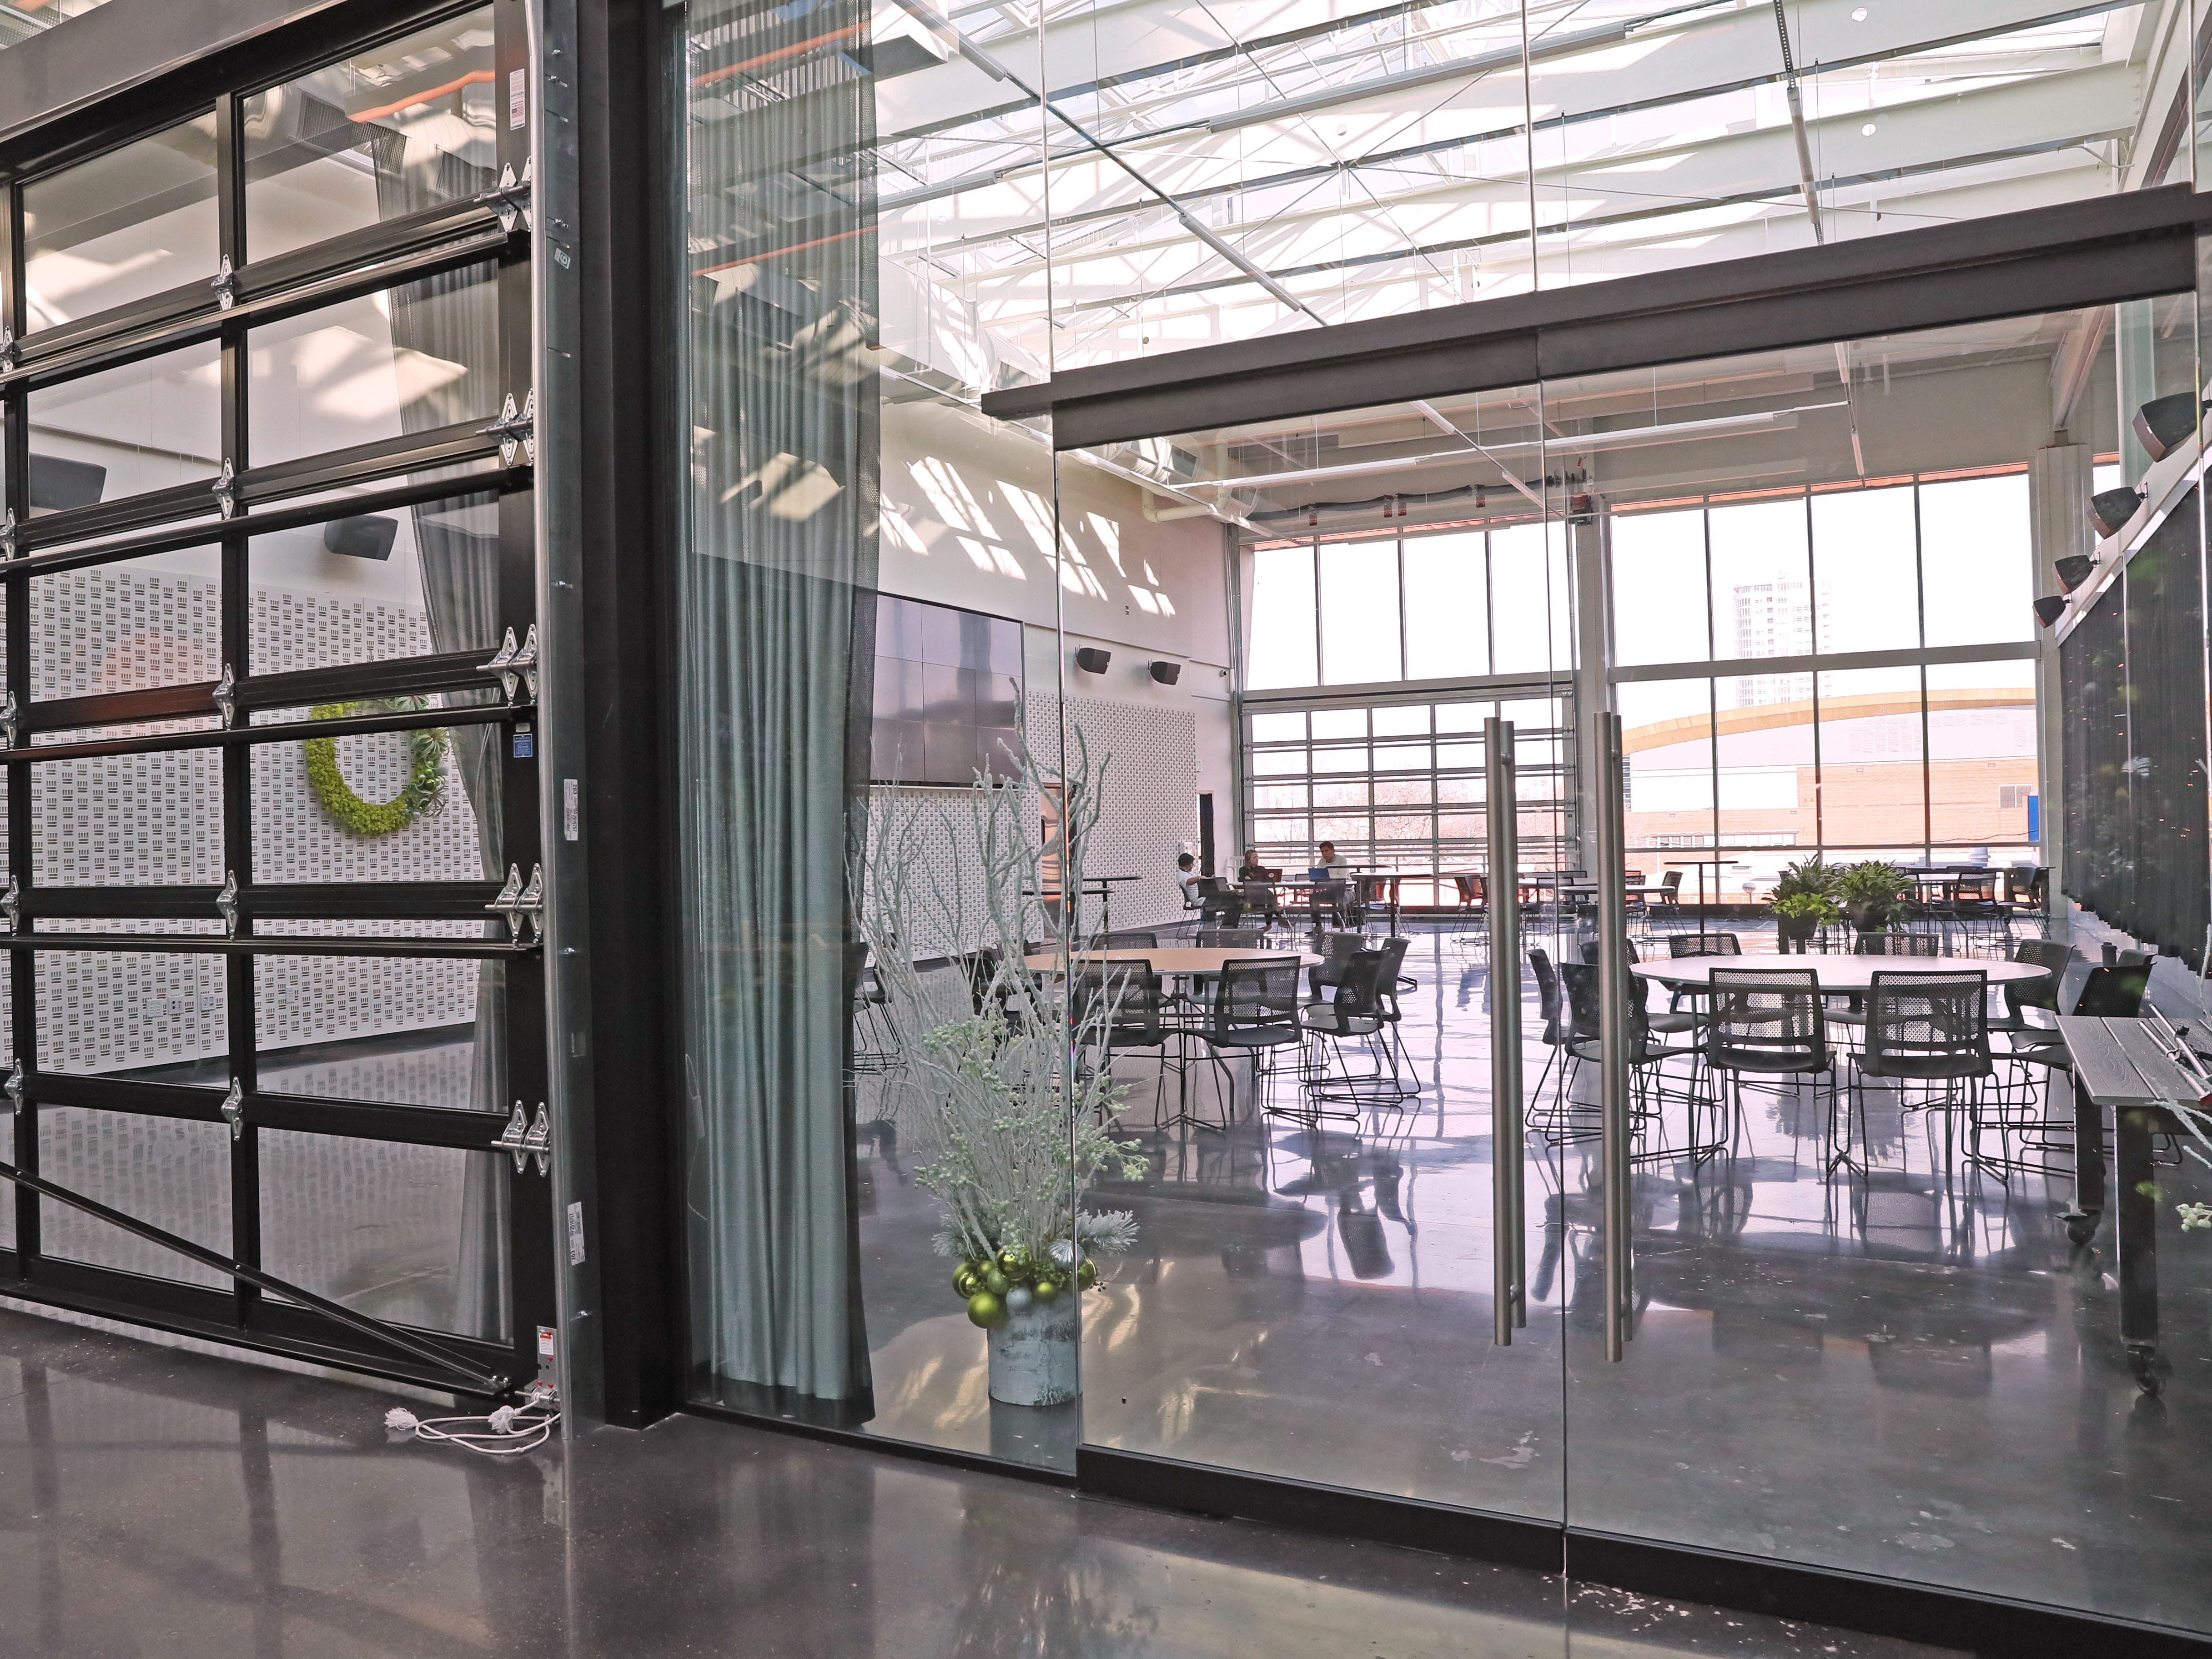 Banquet space called Venue 42 is at the eastern end of Glass + Griddle.